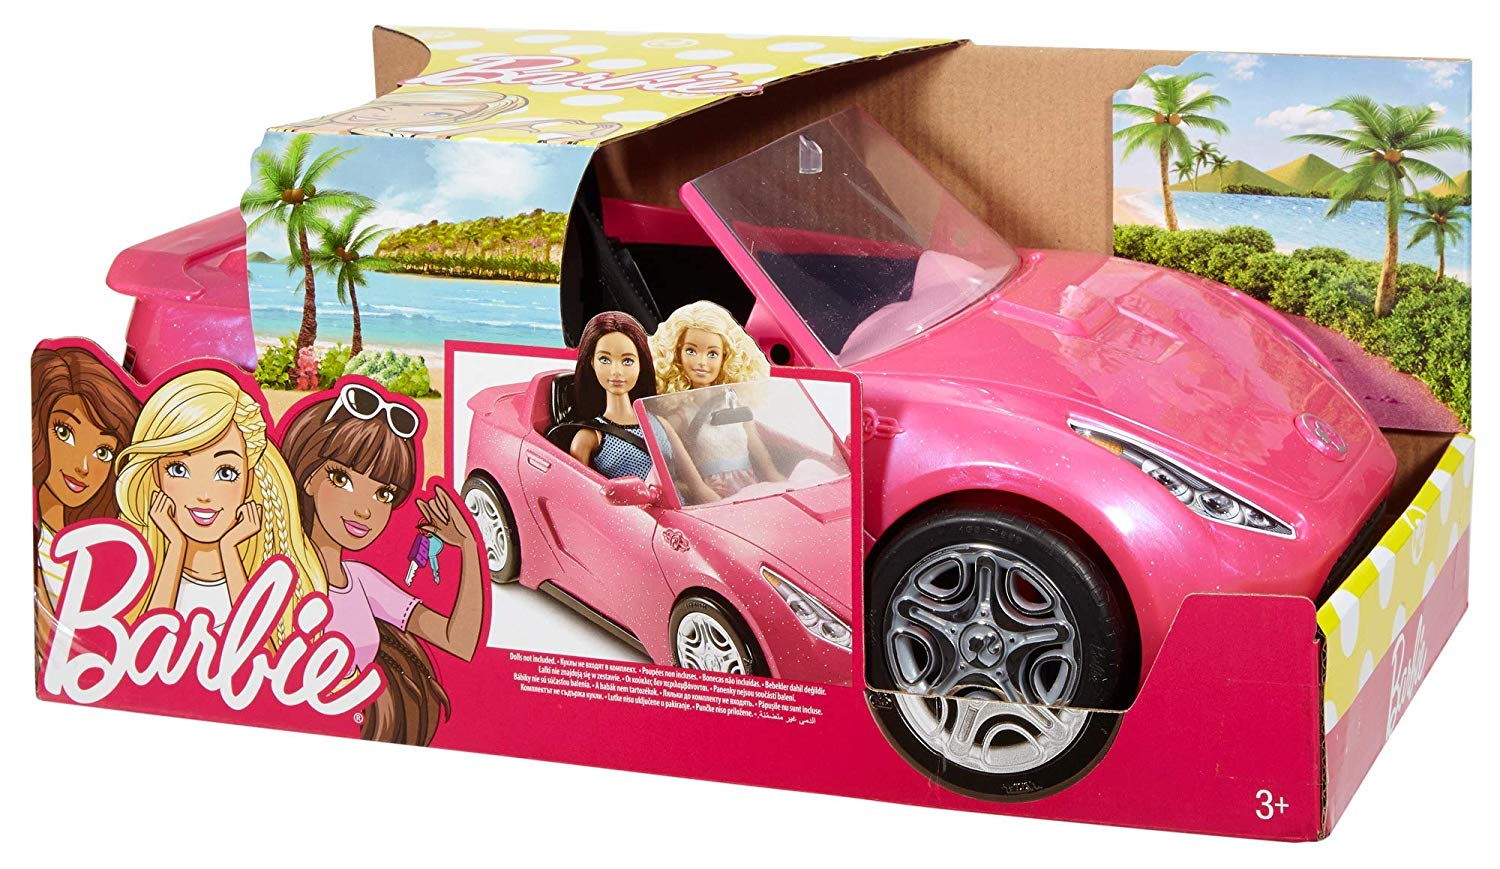 Barbie Glam Convertible 14 29 At Amazon Regularly 42 Daily